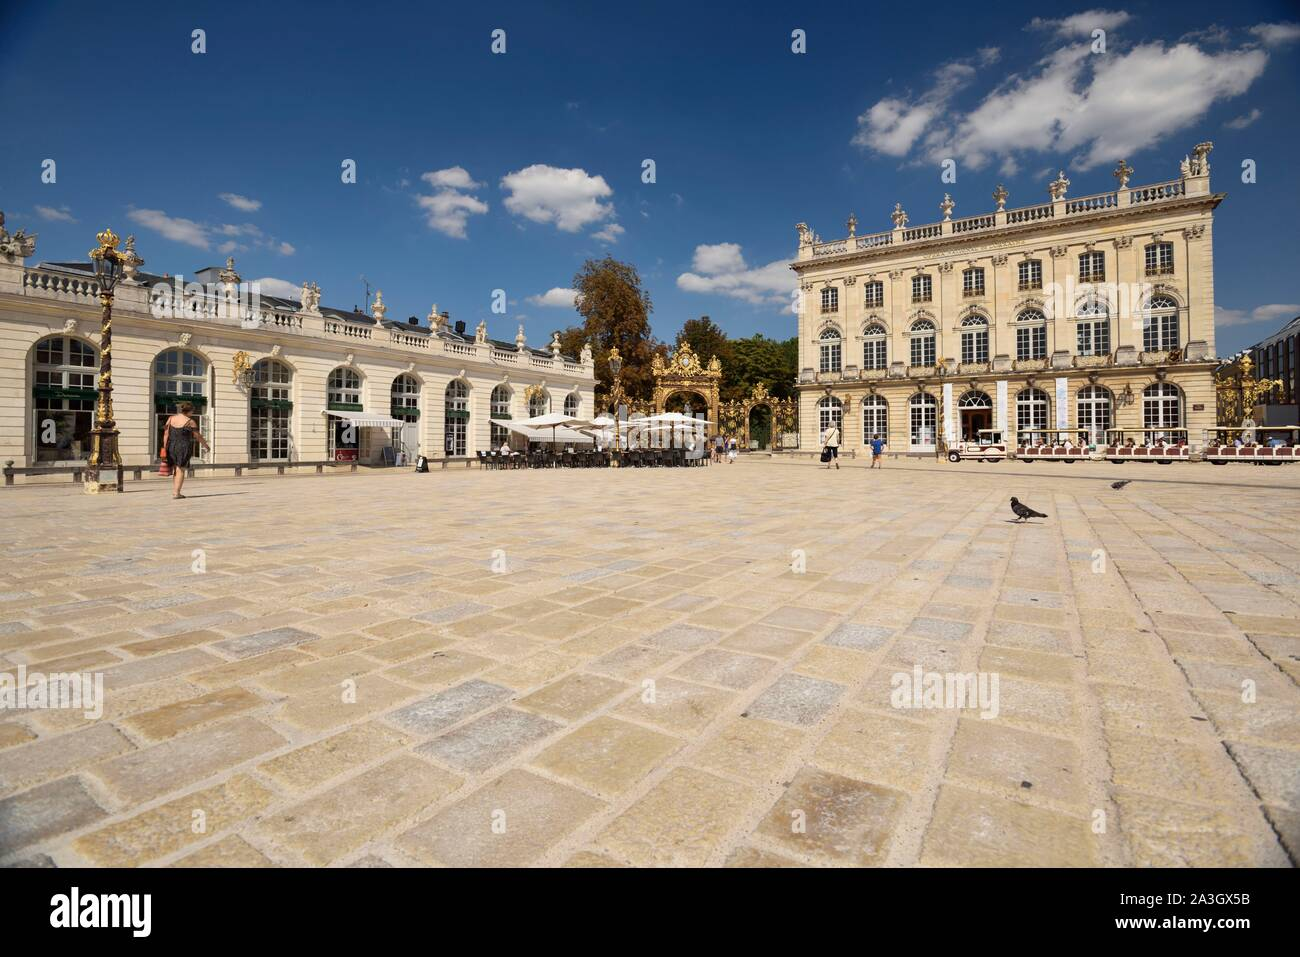 France, Meurthe and Moselle, Nancy, place Stanislas (former Place Royale) built by Stanislas Leszczynski, king of Poland and last duke of Lorraine in the eighteenth century, classified World Heritage of UNESCO, Amphitrite fountain designed by Guibal and gold racks of Jean Lamour Stock Photo